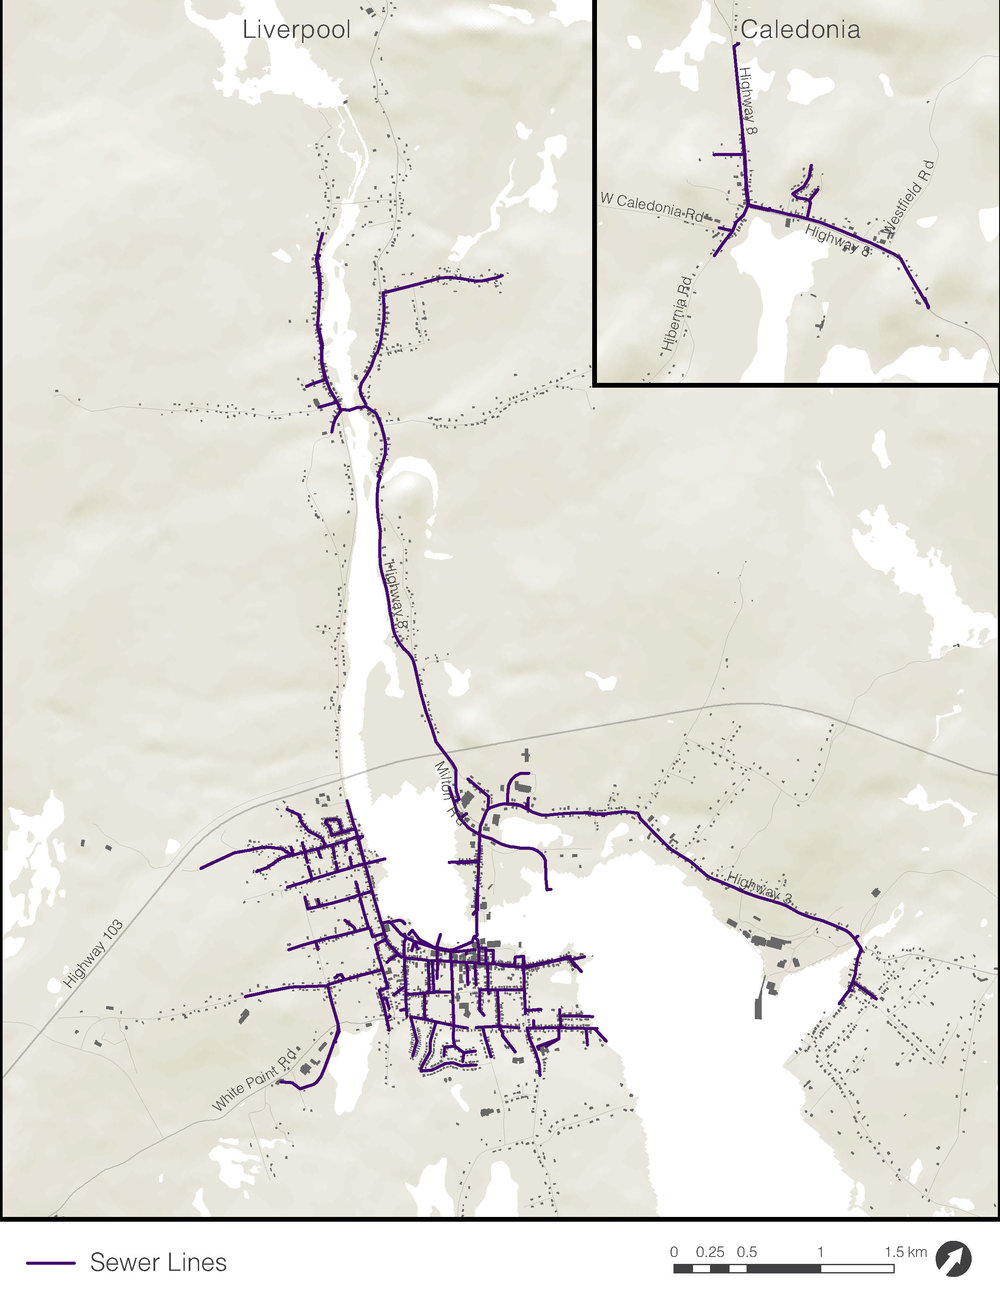 This map shows the location of existing sewer lines